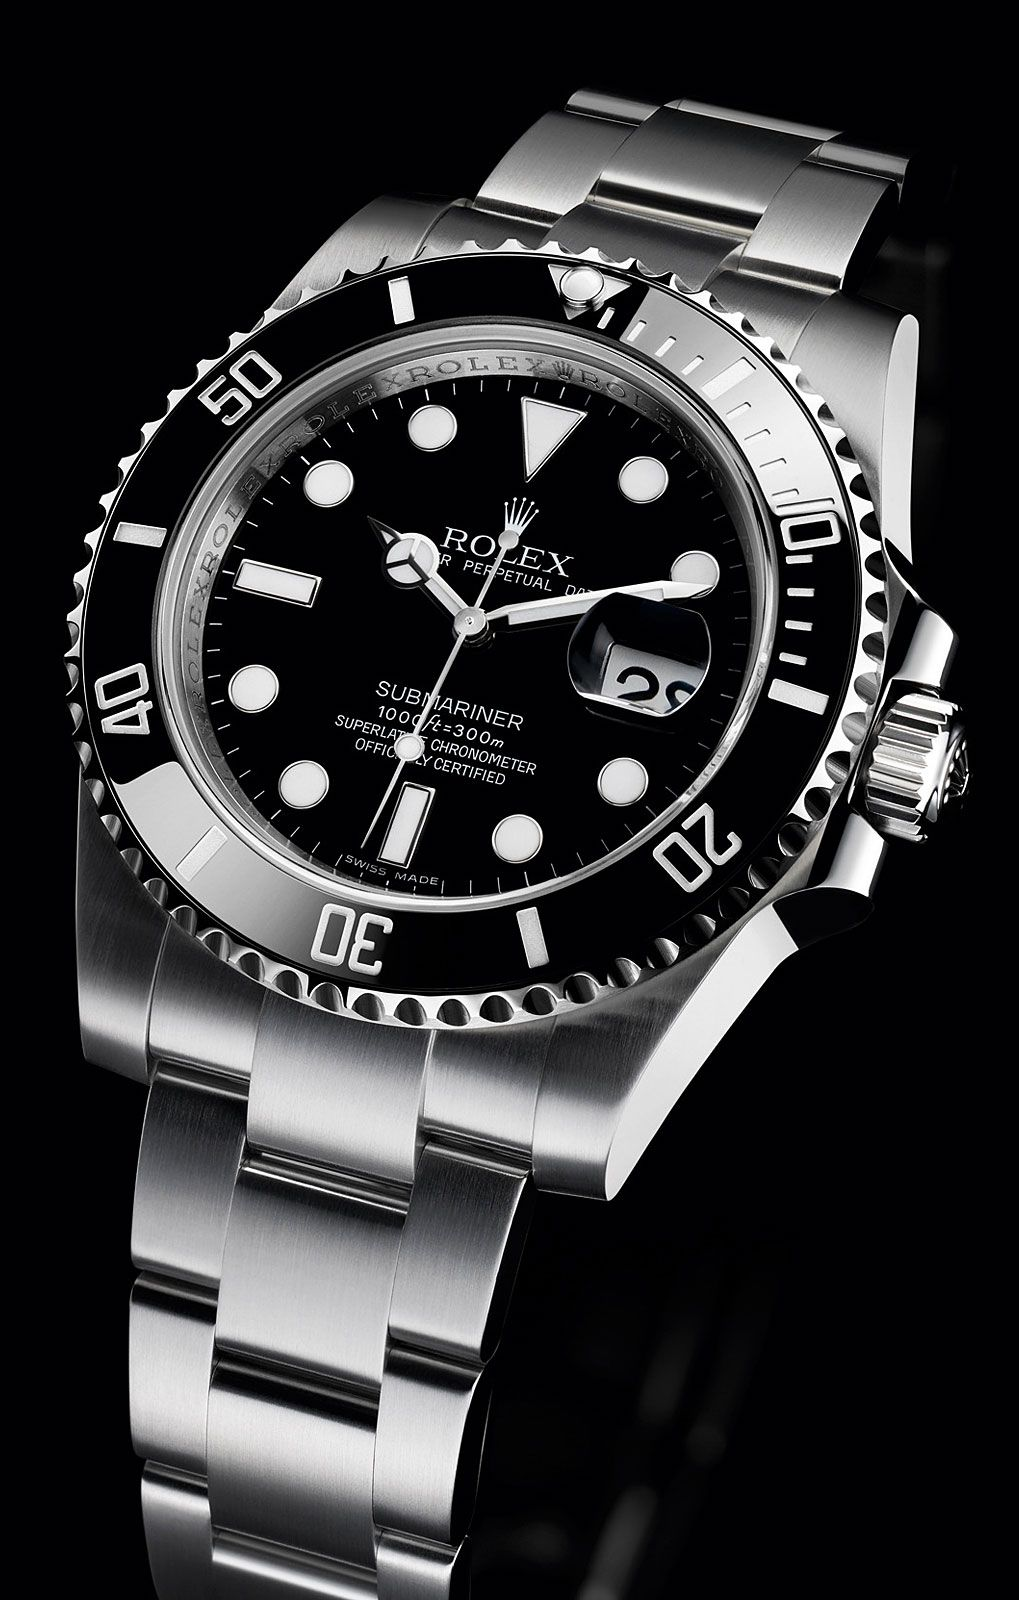 37172ecf337 Rolex Oyster Perpetual Submariner diving watch